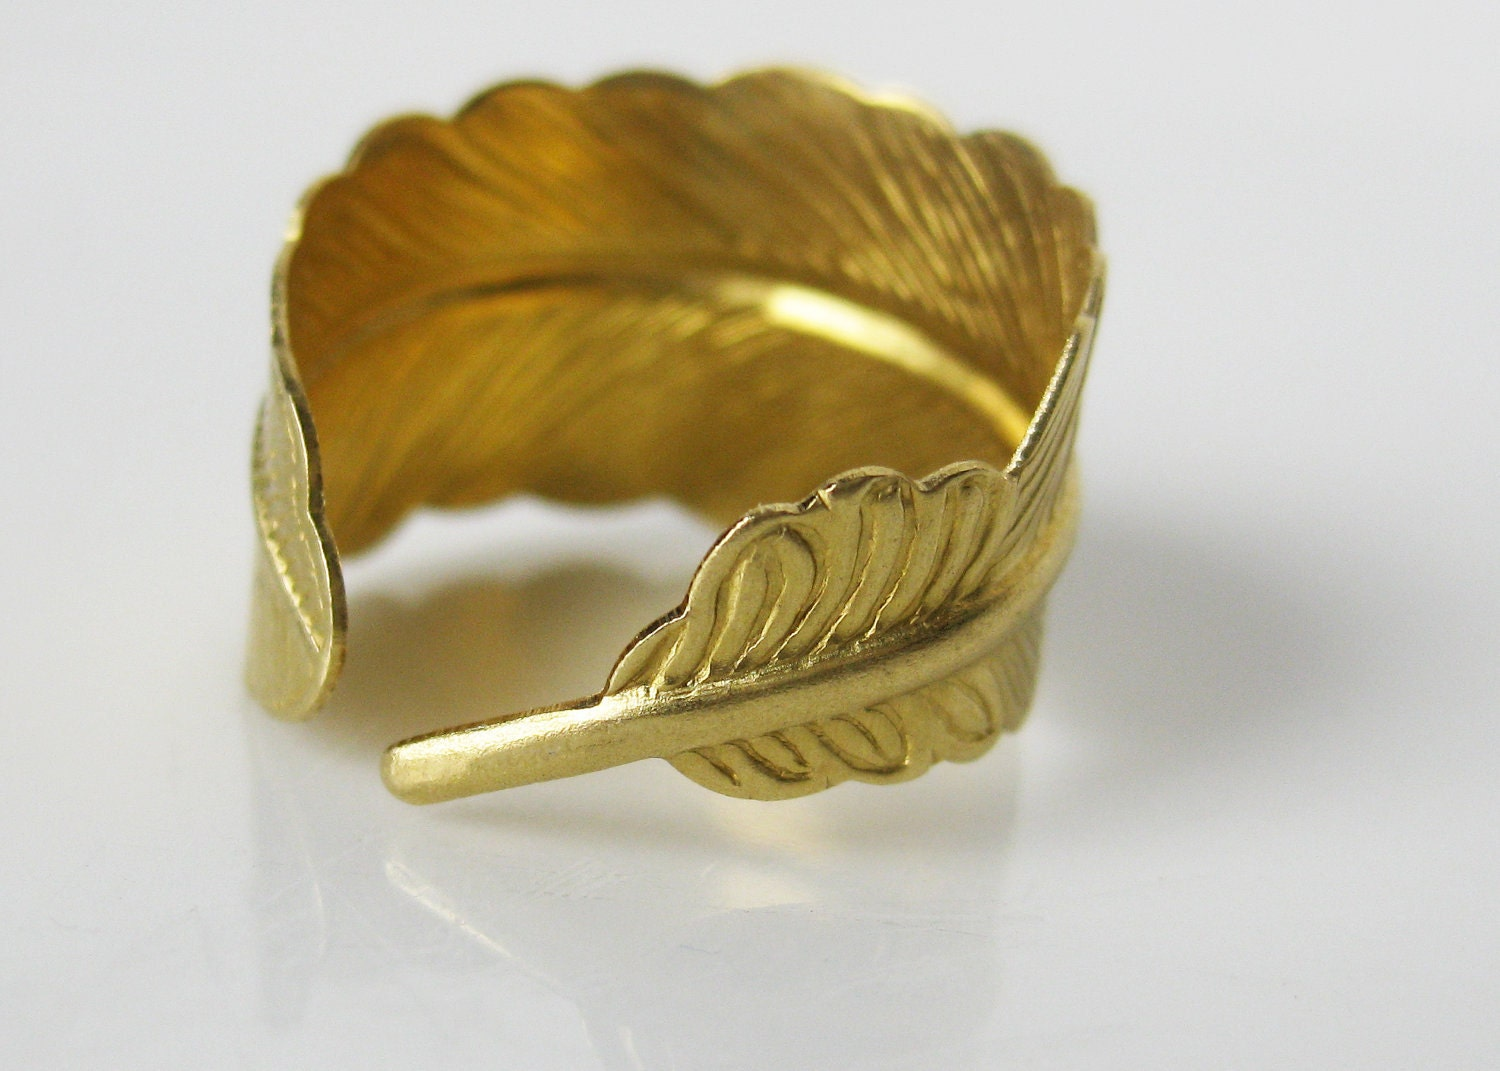 gold feather ring gold ring brass adjustable ring open